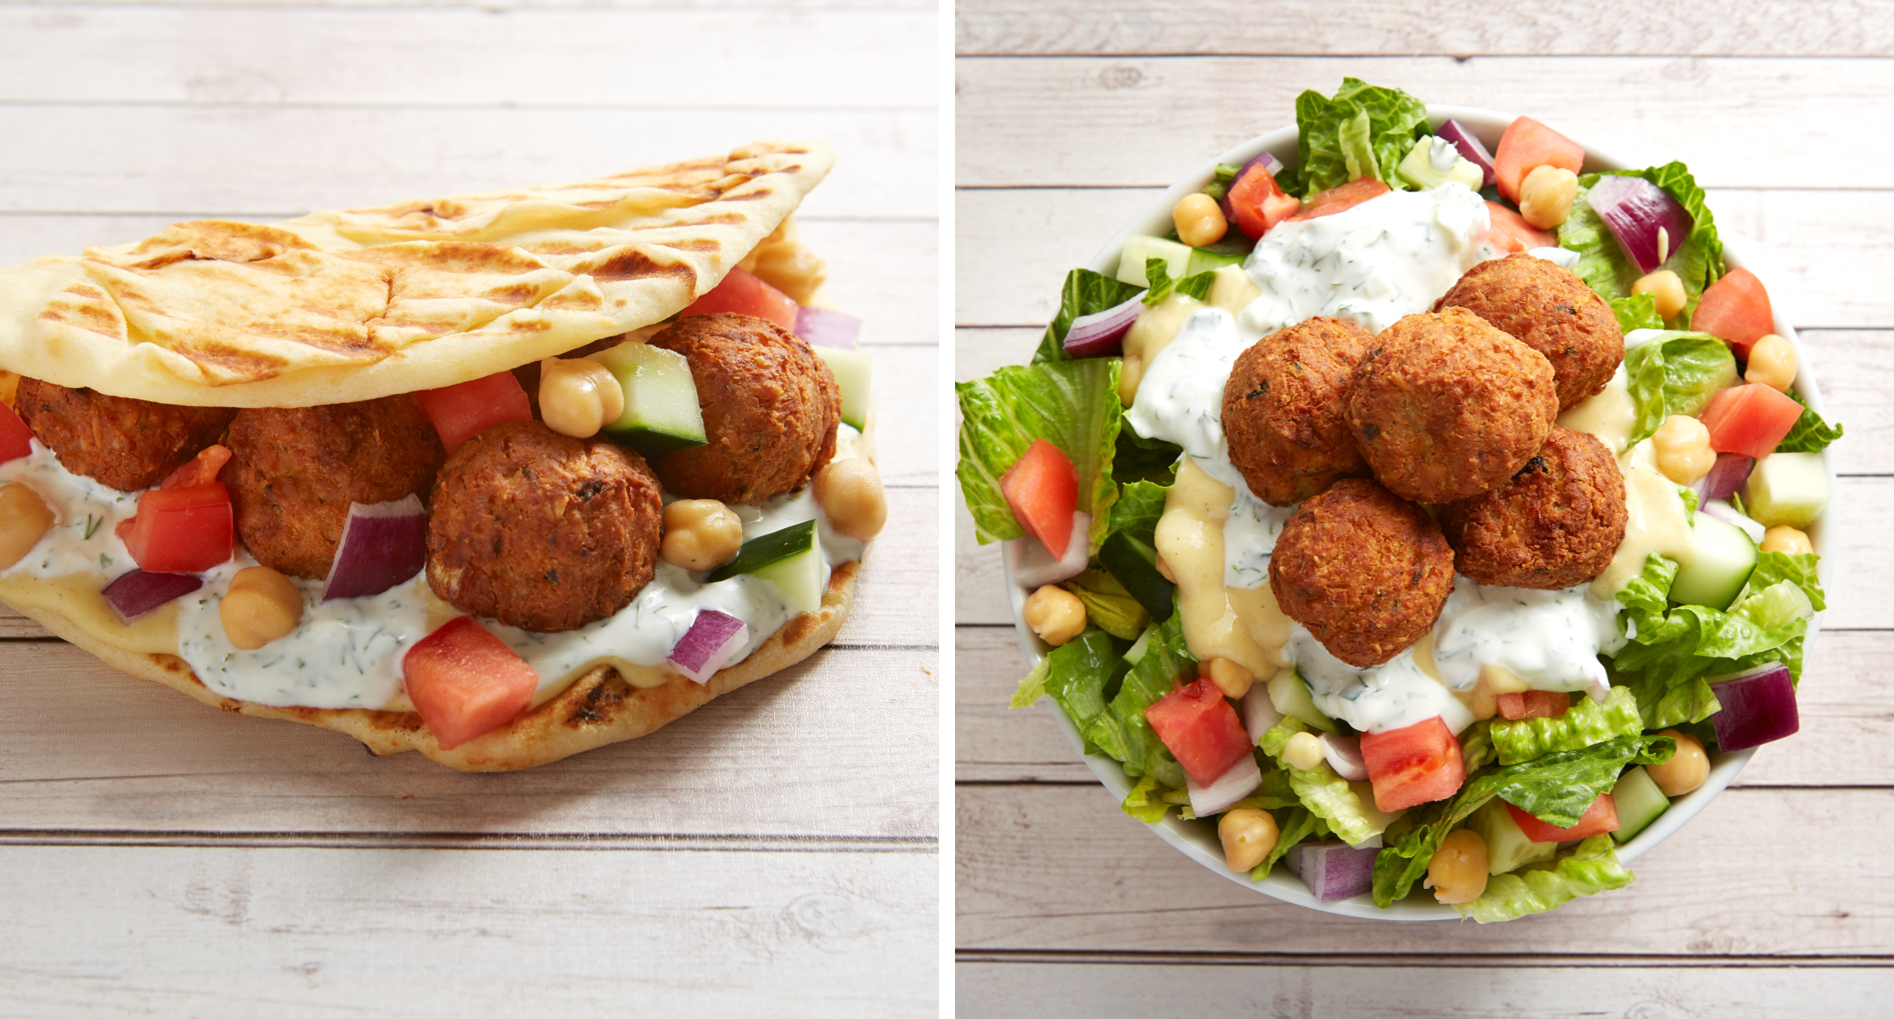 Falafel Gyro - falafel, chickpea, onion, tomato, cucumber, hummus & tzatziki sauce wrapped in flatbread. Falafel Salad - romaine topped with falafel, chickpea, onion, tomato, cucumber, hummus & tzatziki sauce